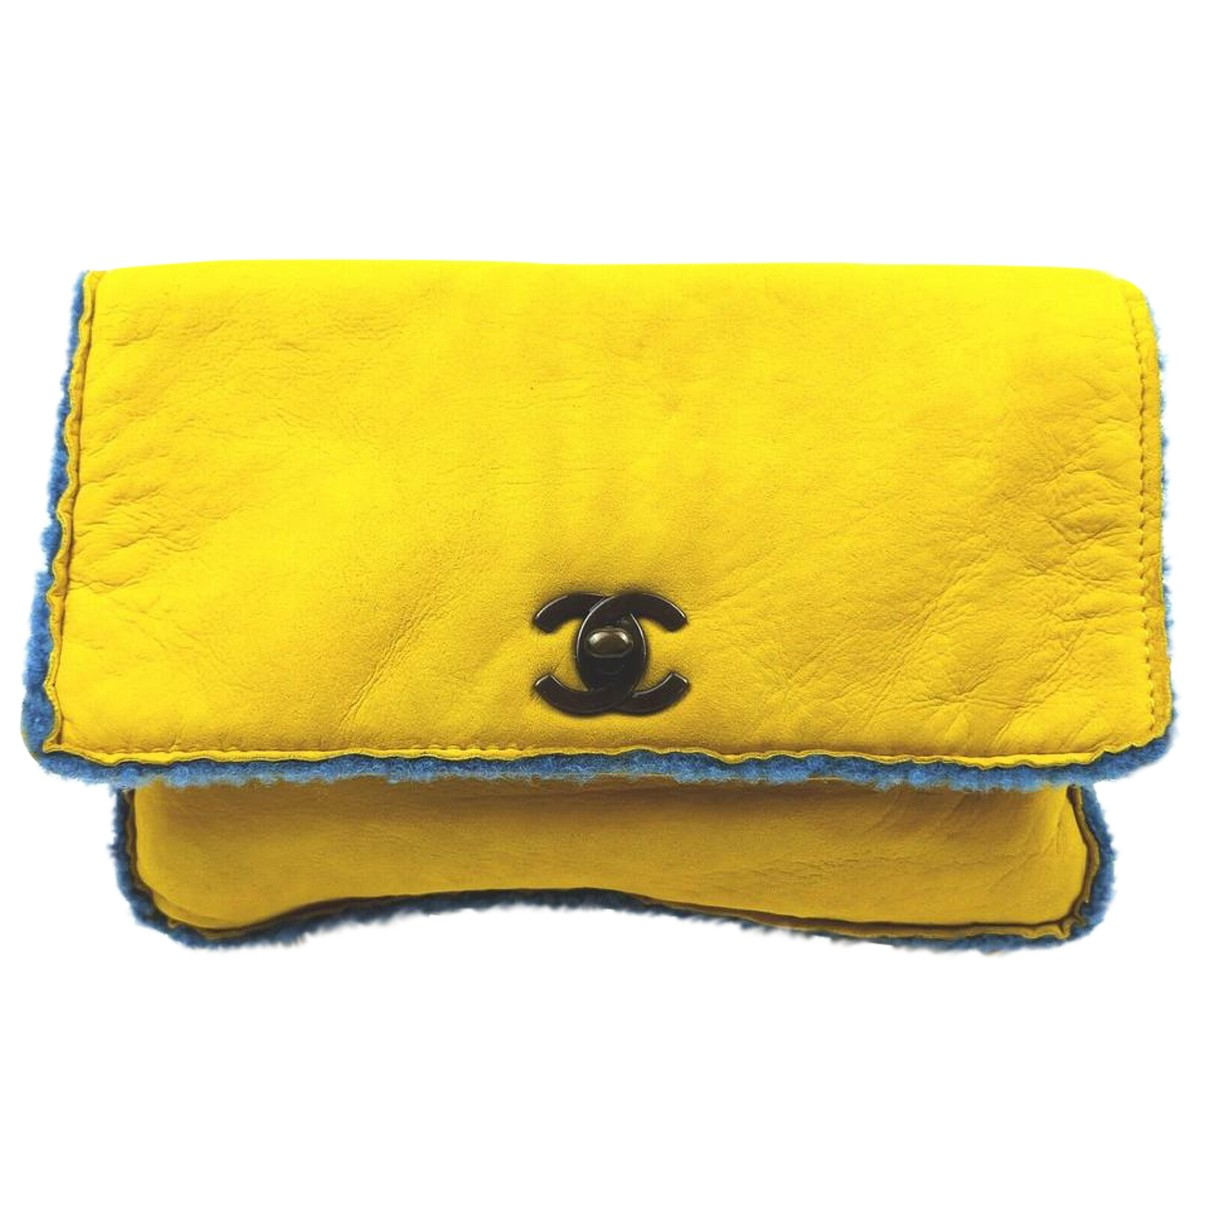 Chanel yellow Cloth CLUTCH BAGS